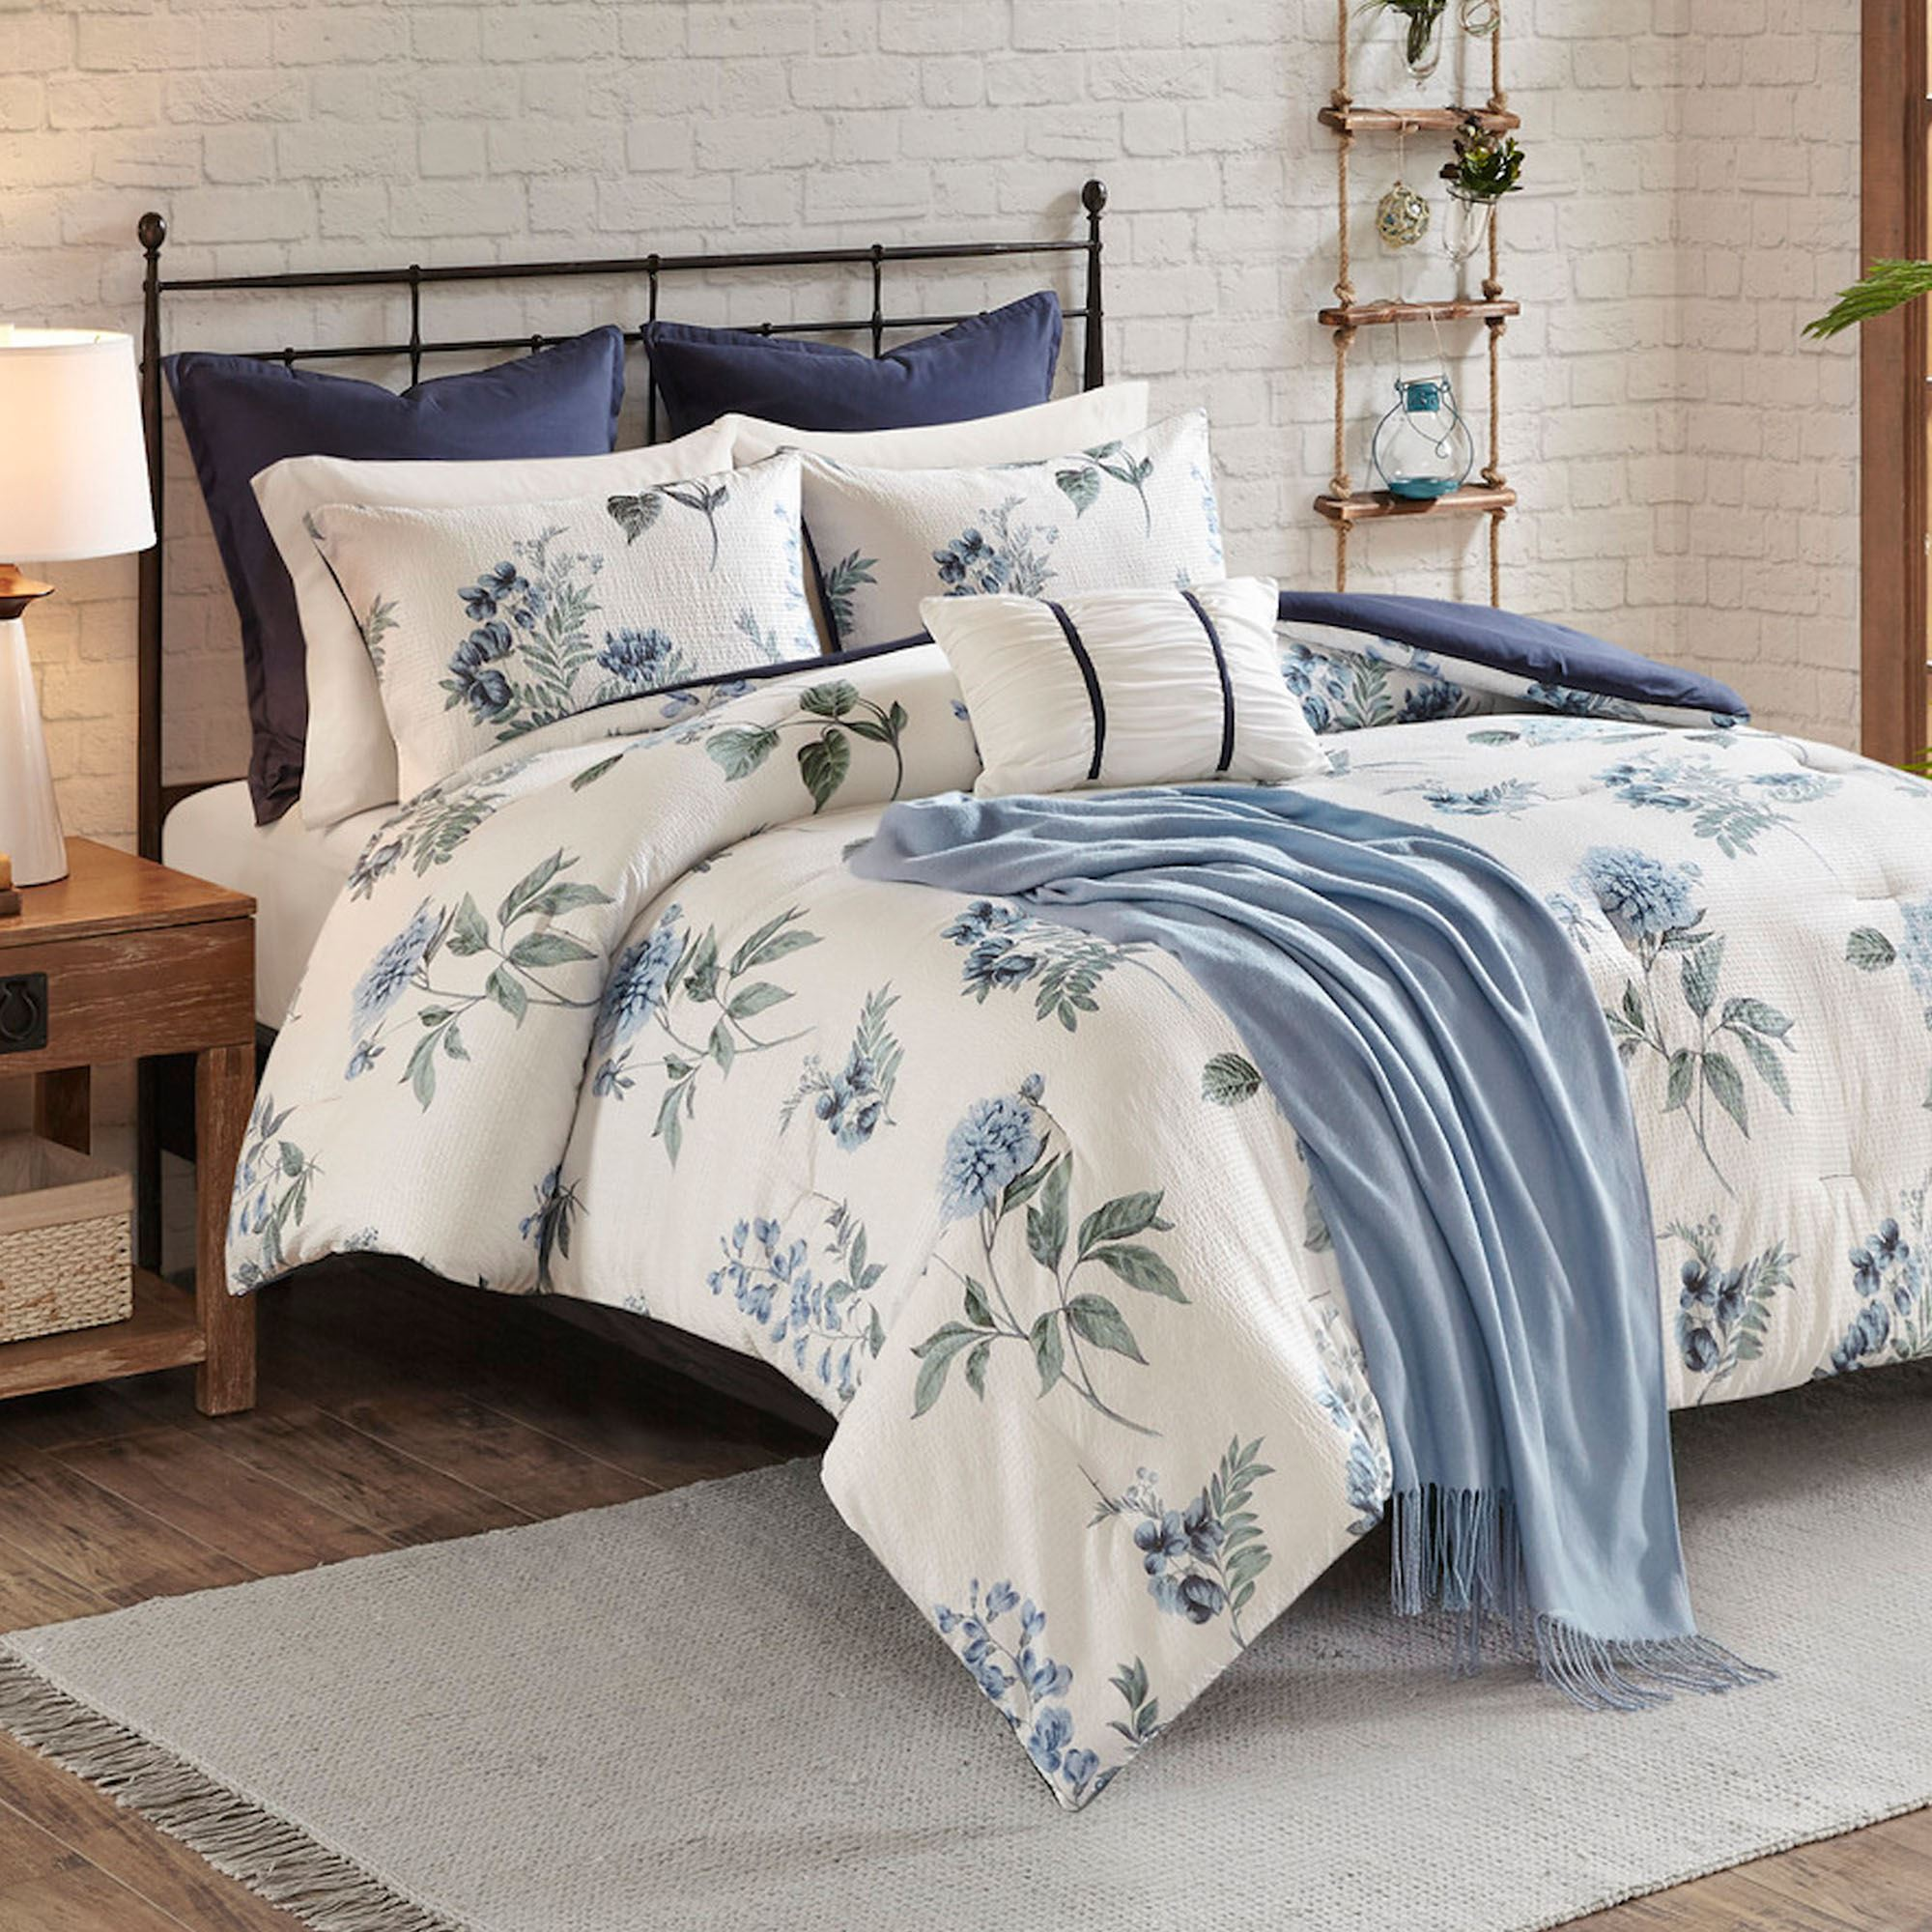 Zennia Blue Floral 7 Pc Comforter Bed Set From Madison Park